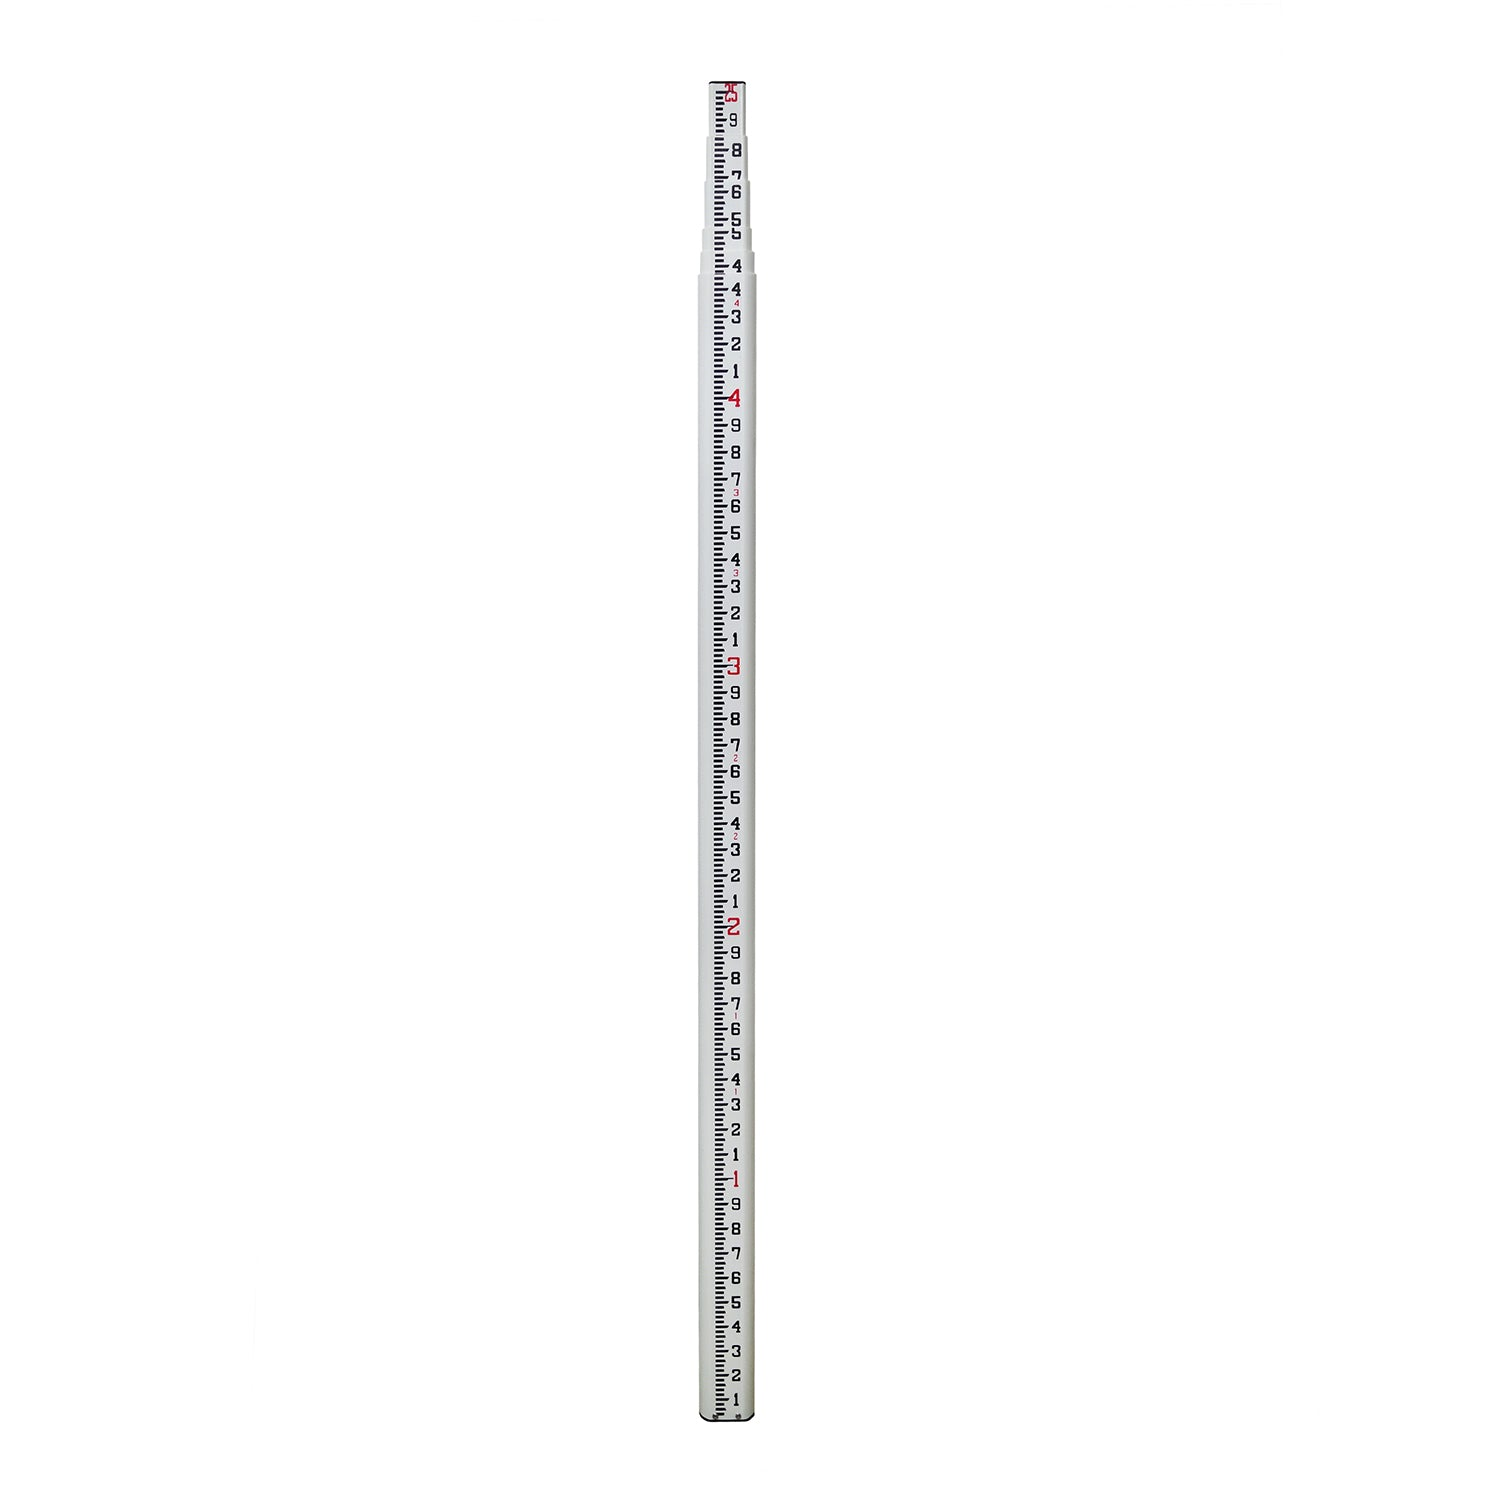 SitePro 25 ft Fiberglass Level Rod (SVR-Type) - 10ths -Rods, Poles & Accessories- eGPS Solutions Inc.